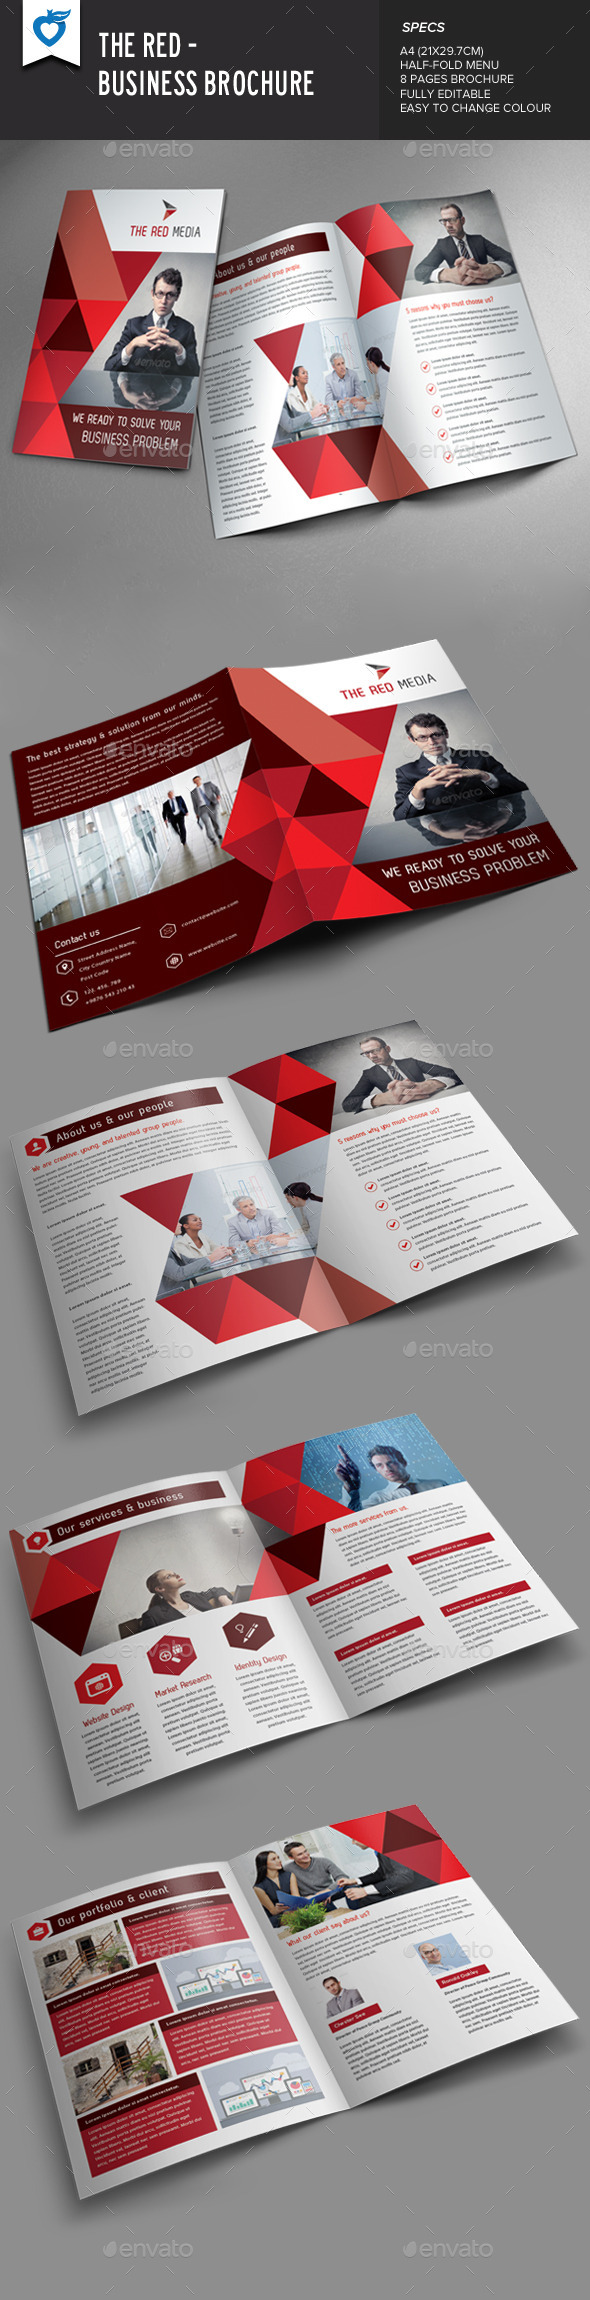 GraphicRiver The Red Business Brochure 9253897